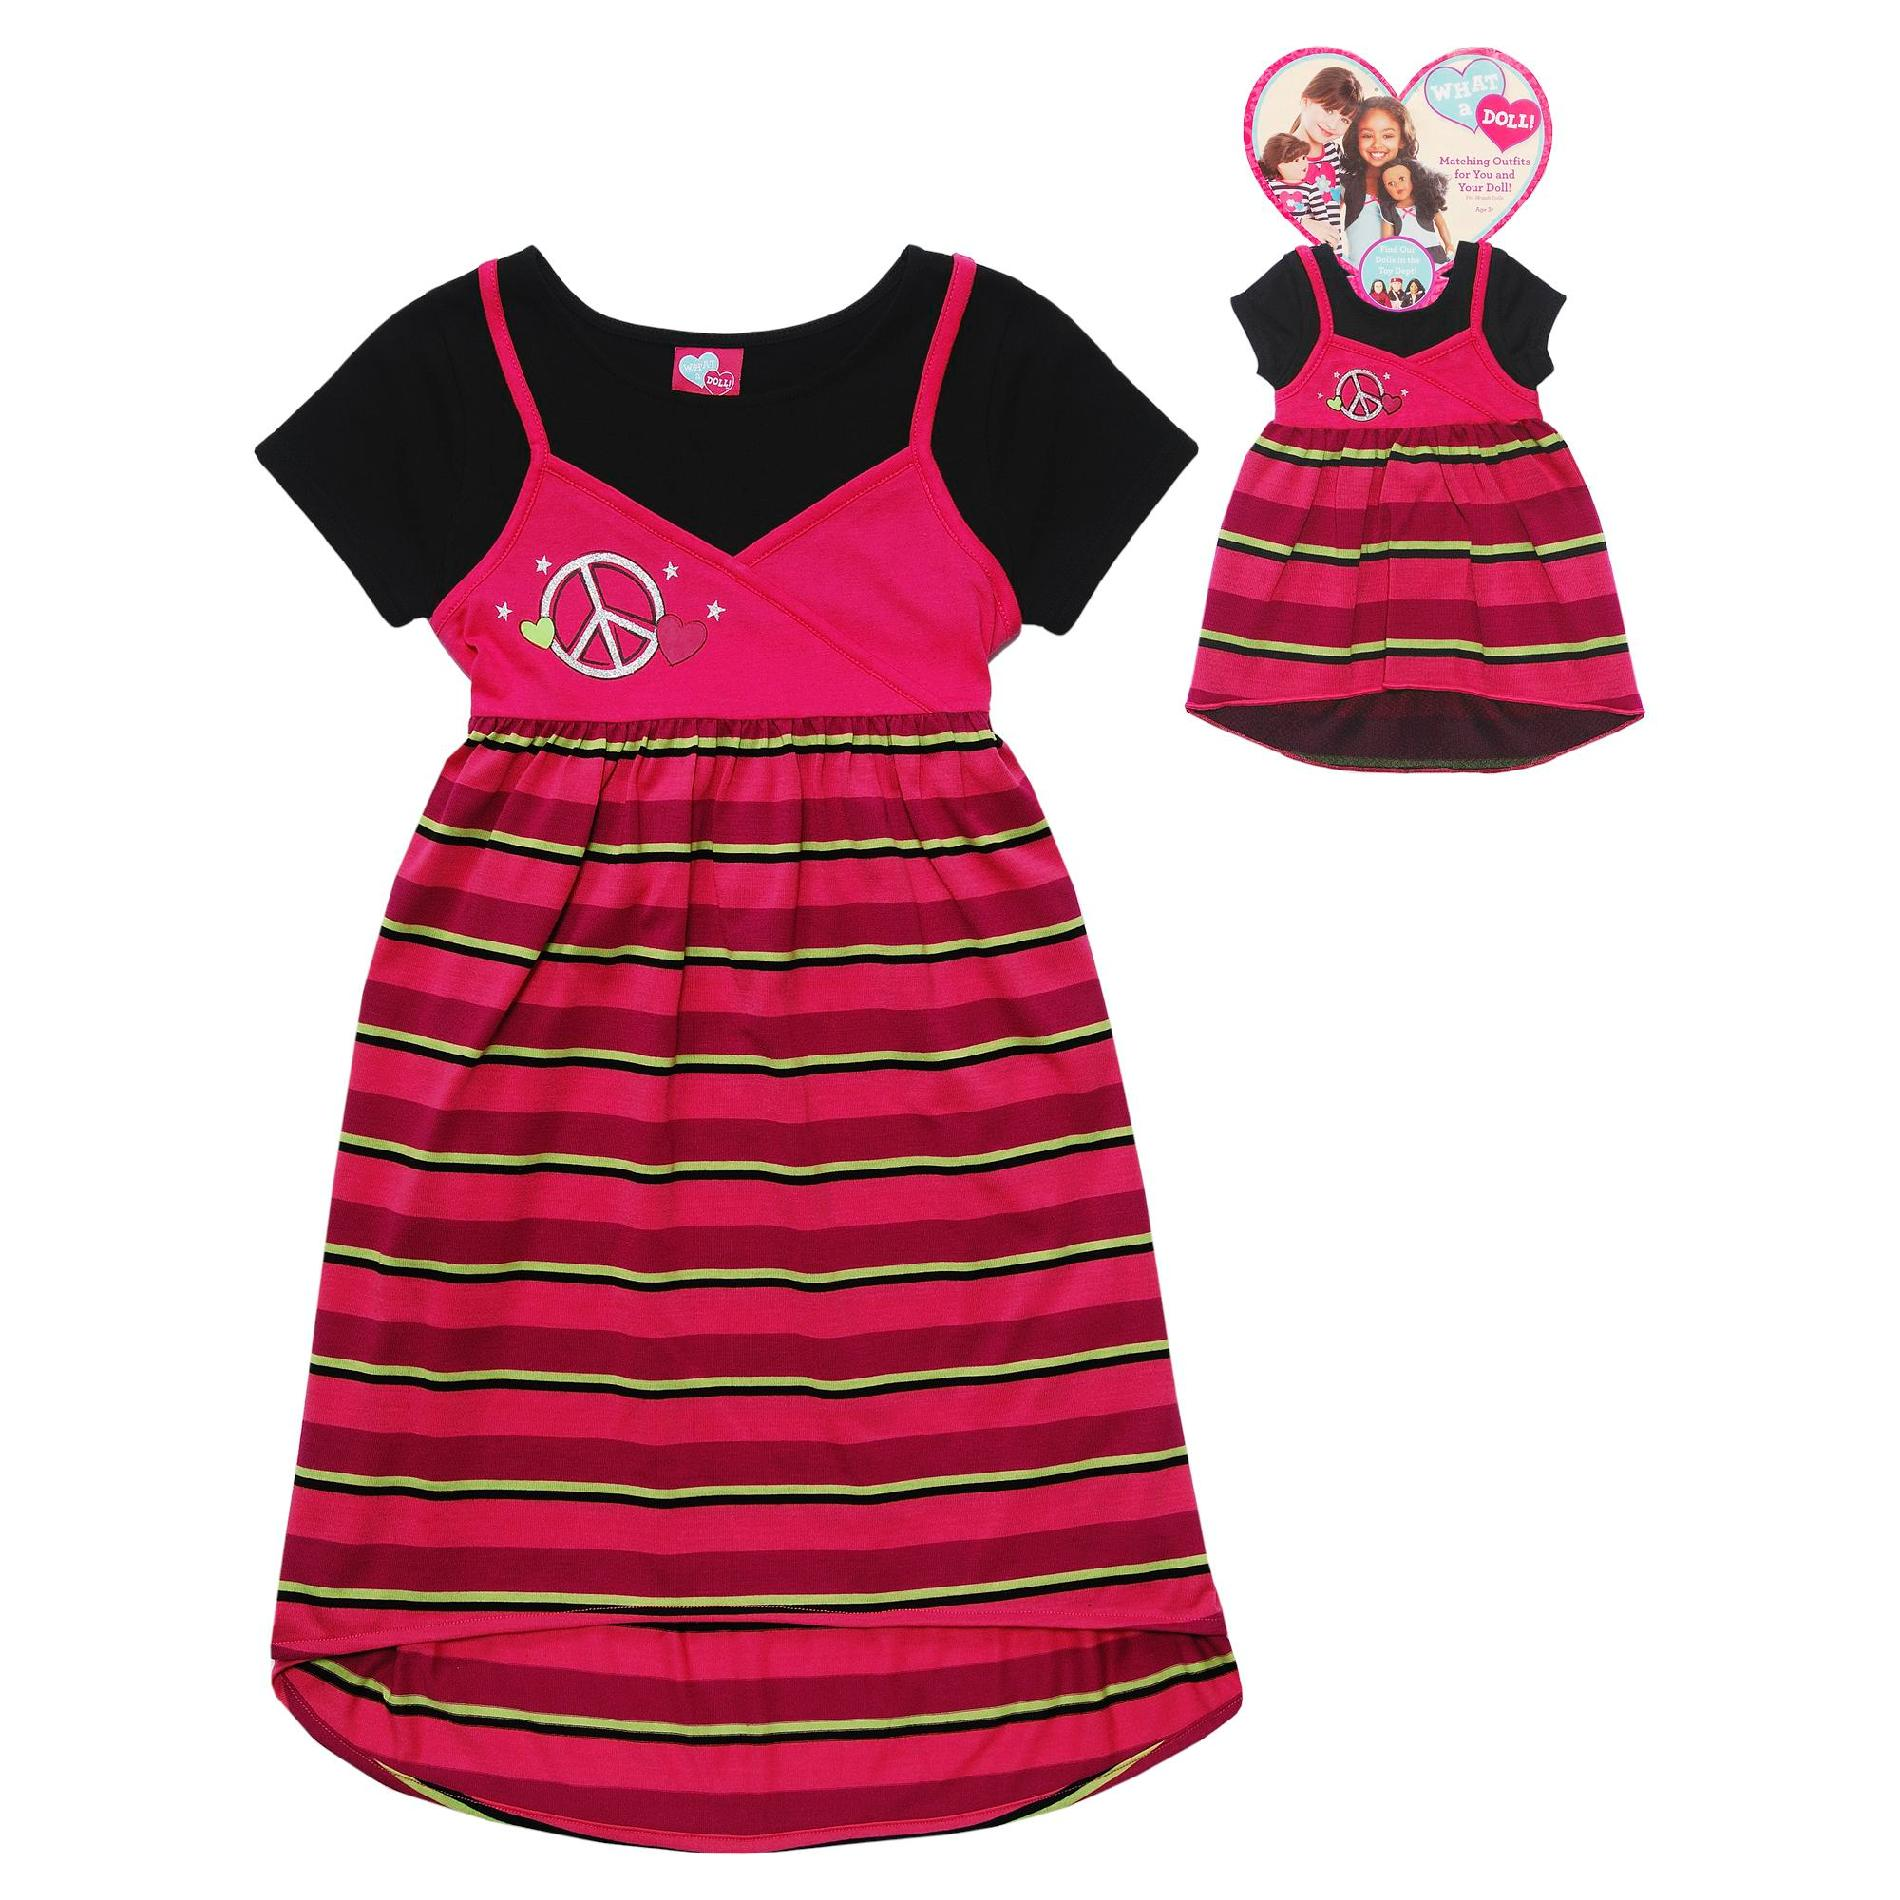 Girl's Layered Look Striped Dress & Doll Dress